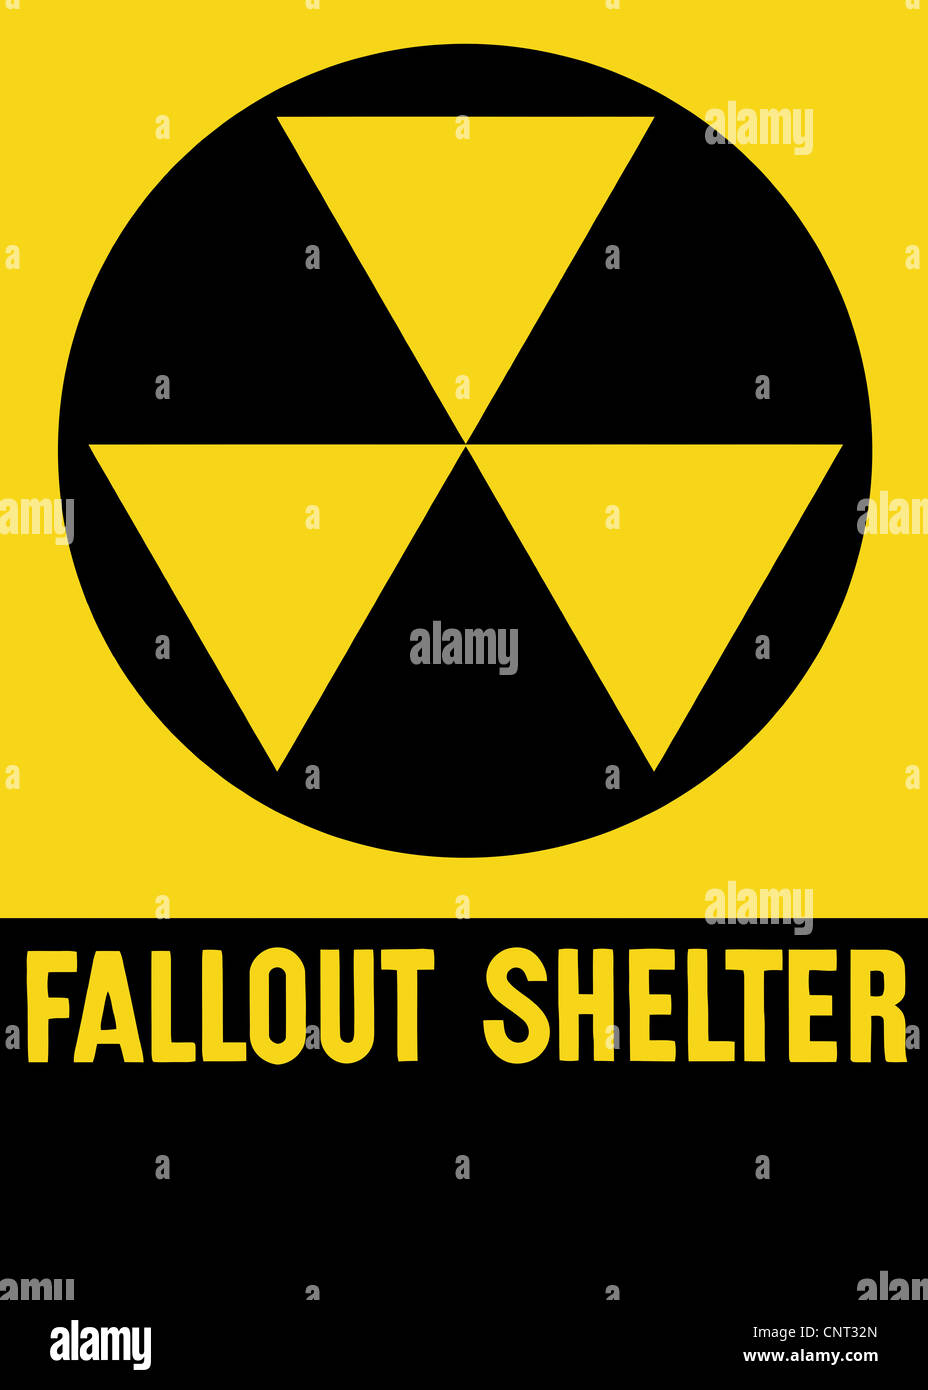 Cold War era fallout shelter sign. Stock Photo